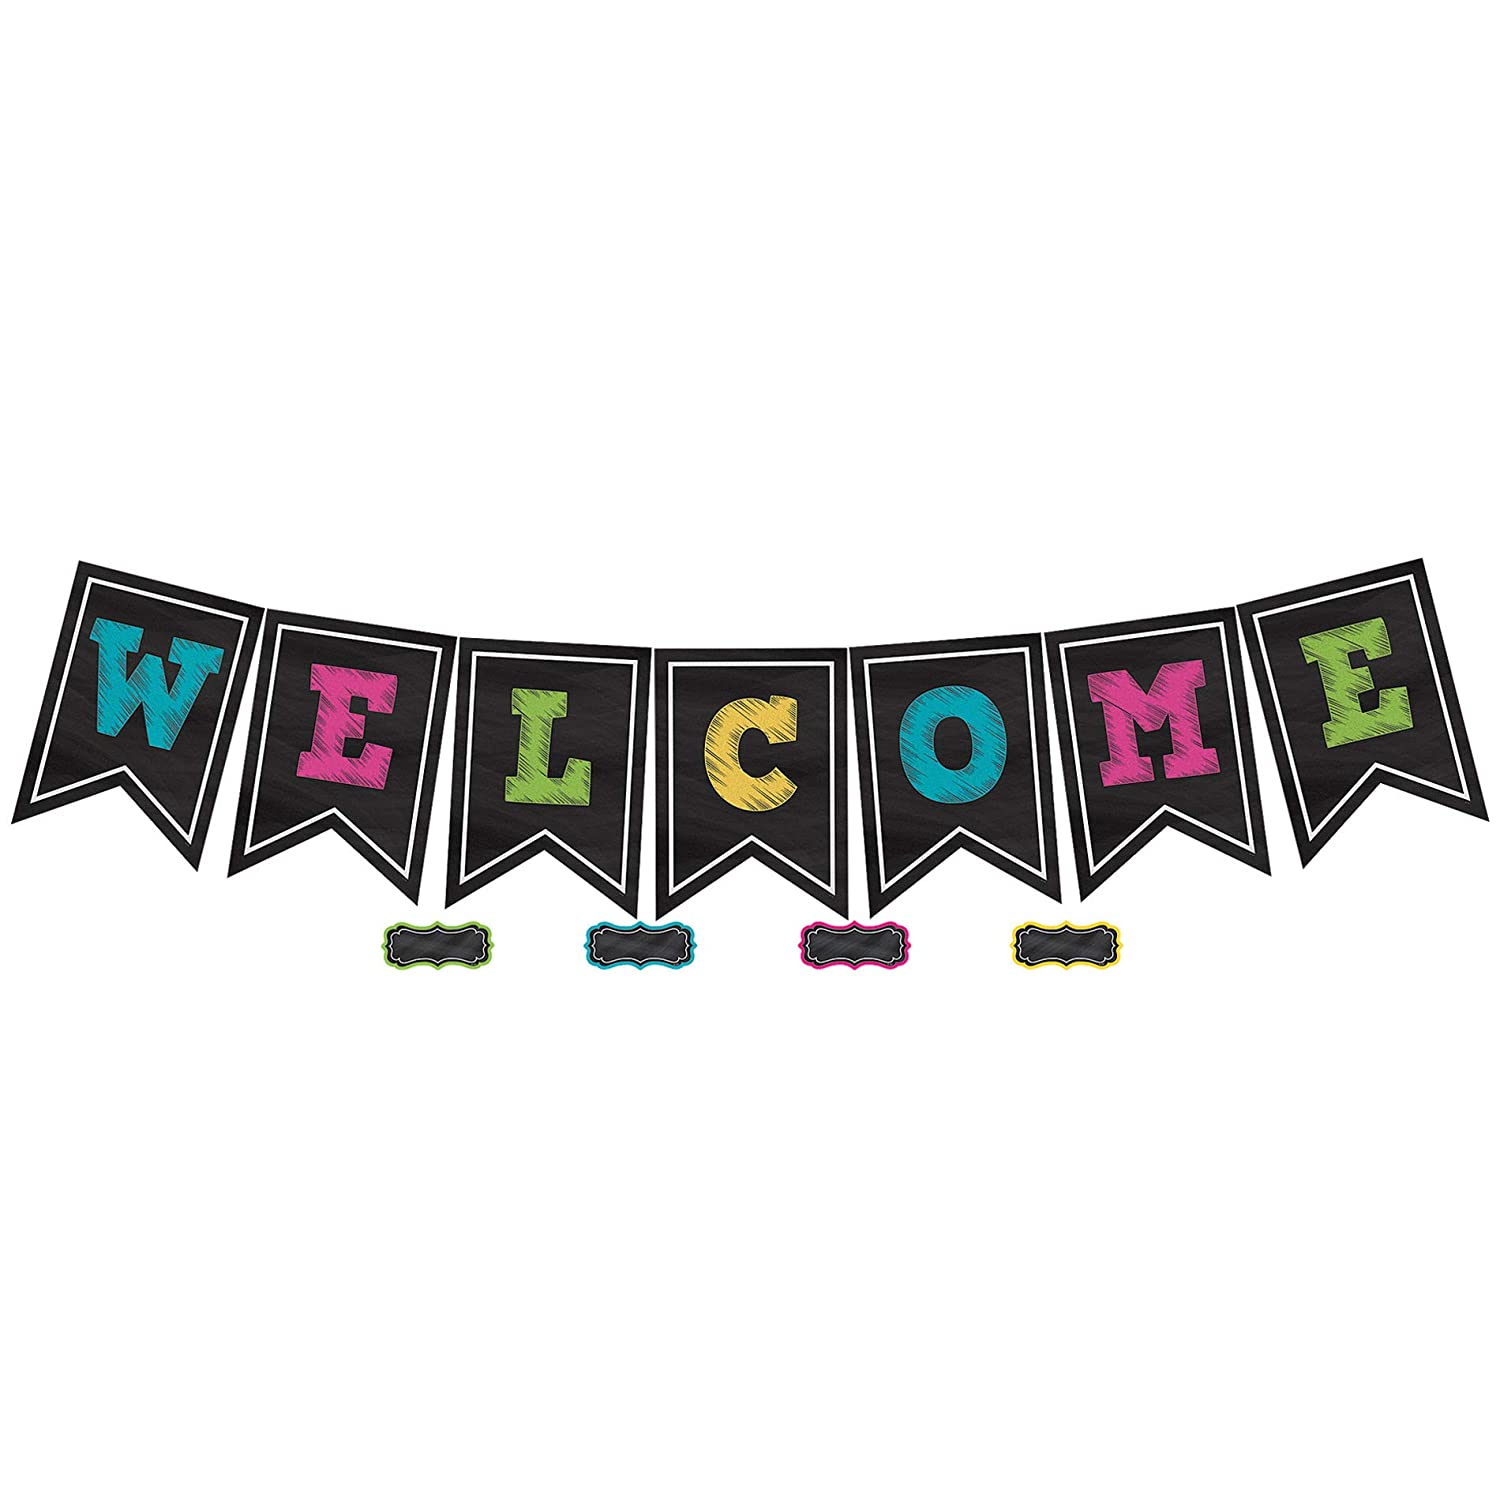 Teacher Created Resources TCR5614 Chalkboard Brights Pennants Welcome Bulletin Board Display